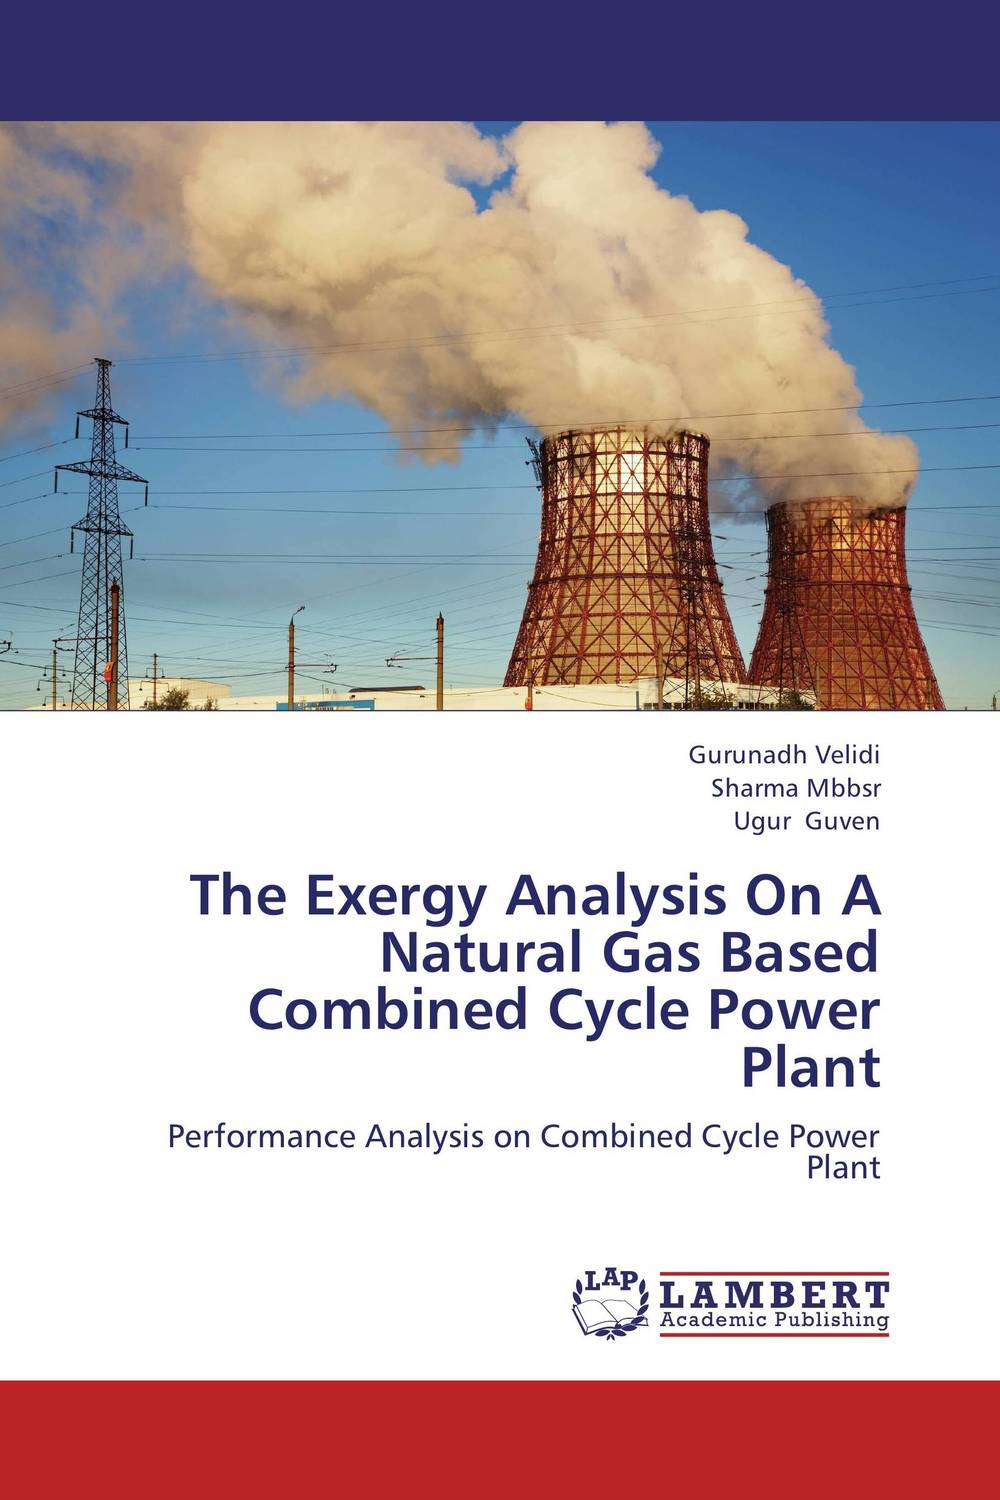 The Exergy Analysis On A Natural Gas Based Combined Cycle Power Plant ce emc lvd fcc ozonizer for gas treatment in electronic plant